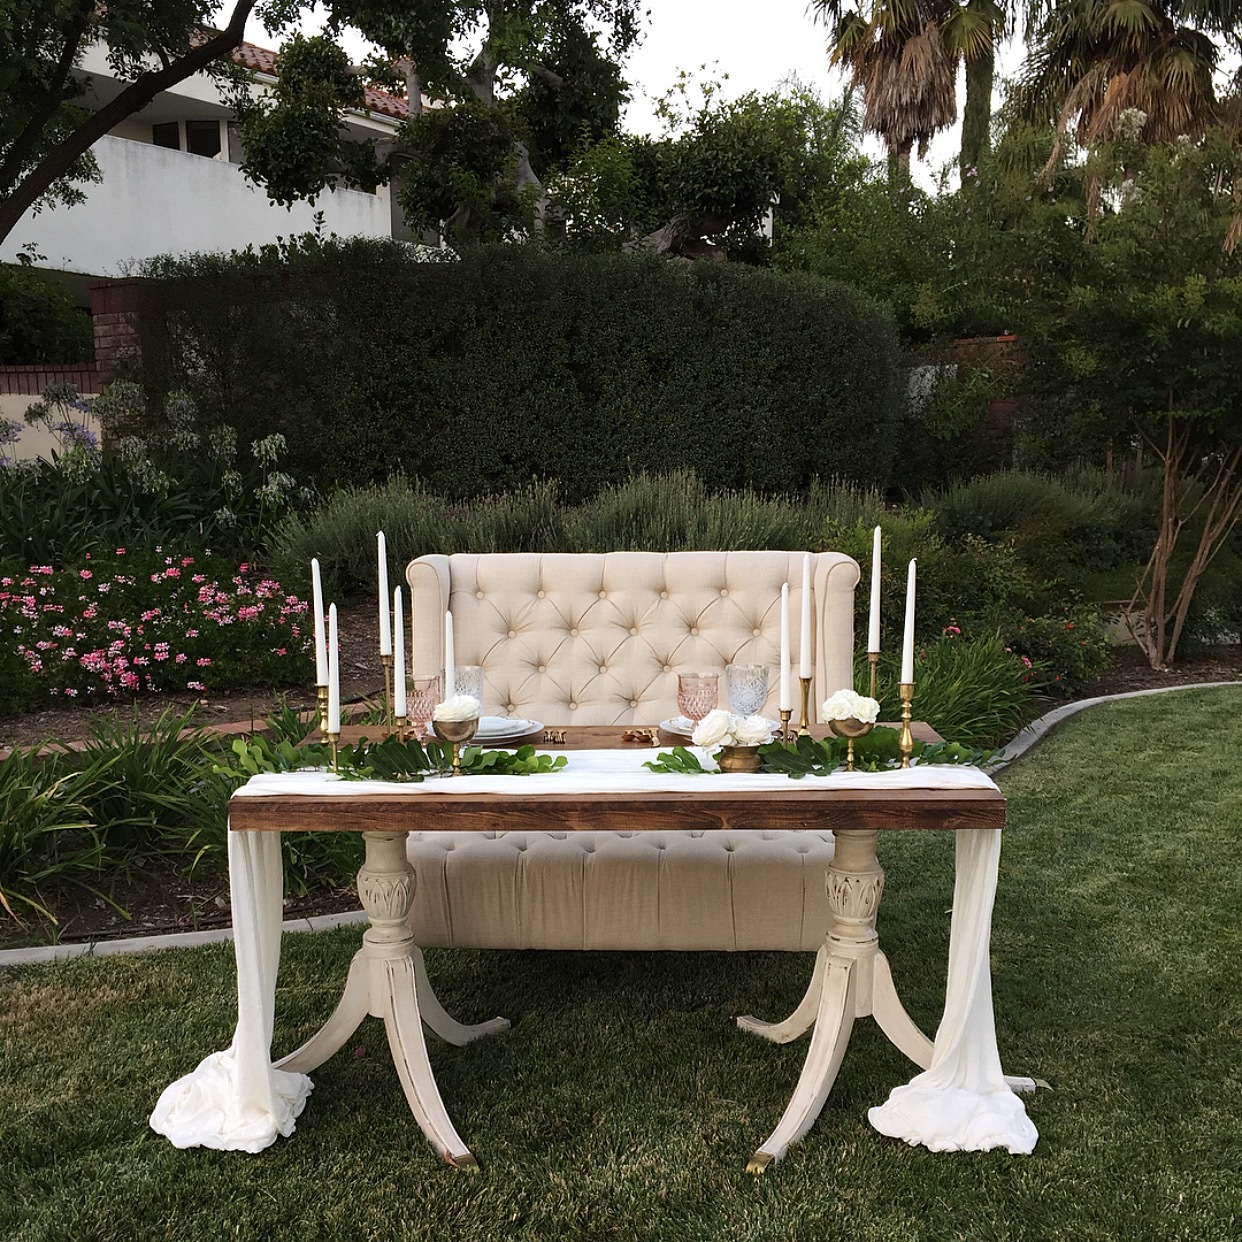 Architectural farm table romance